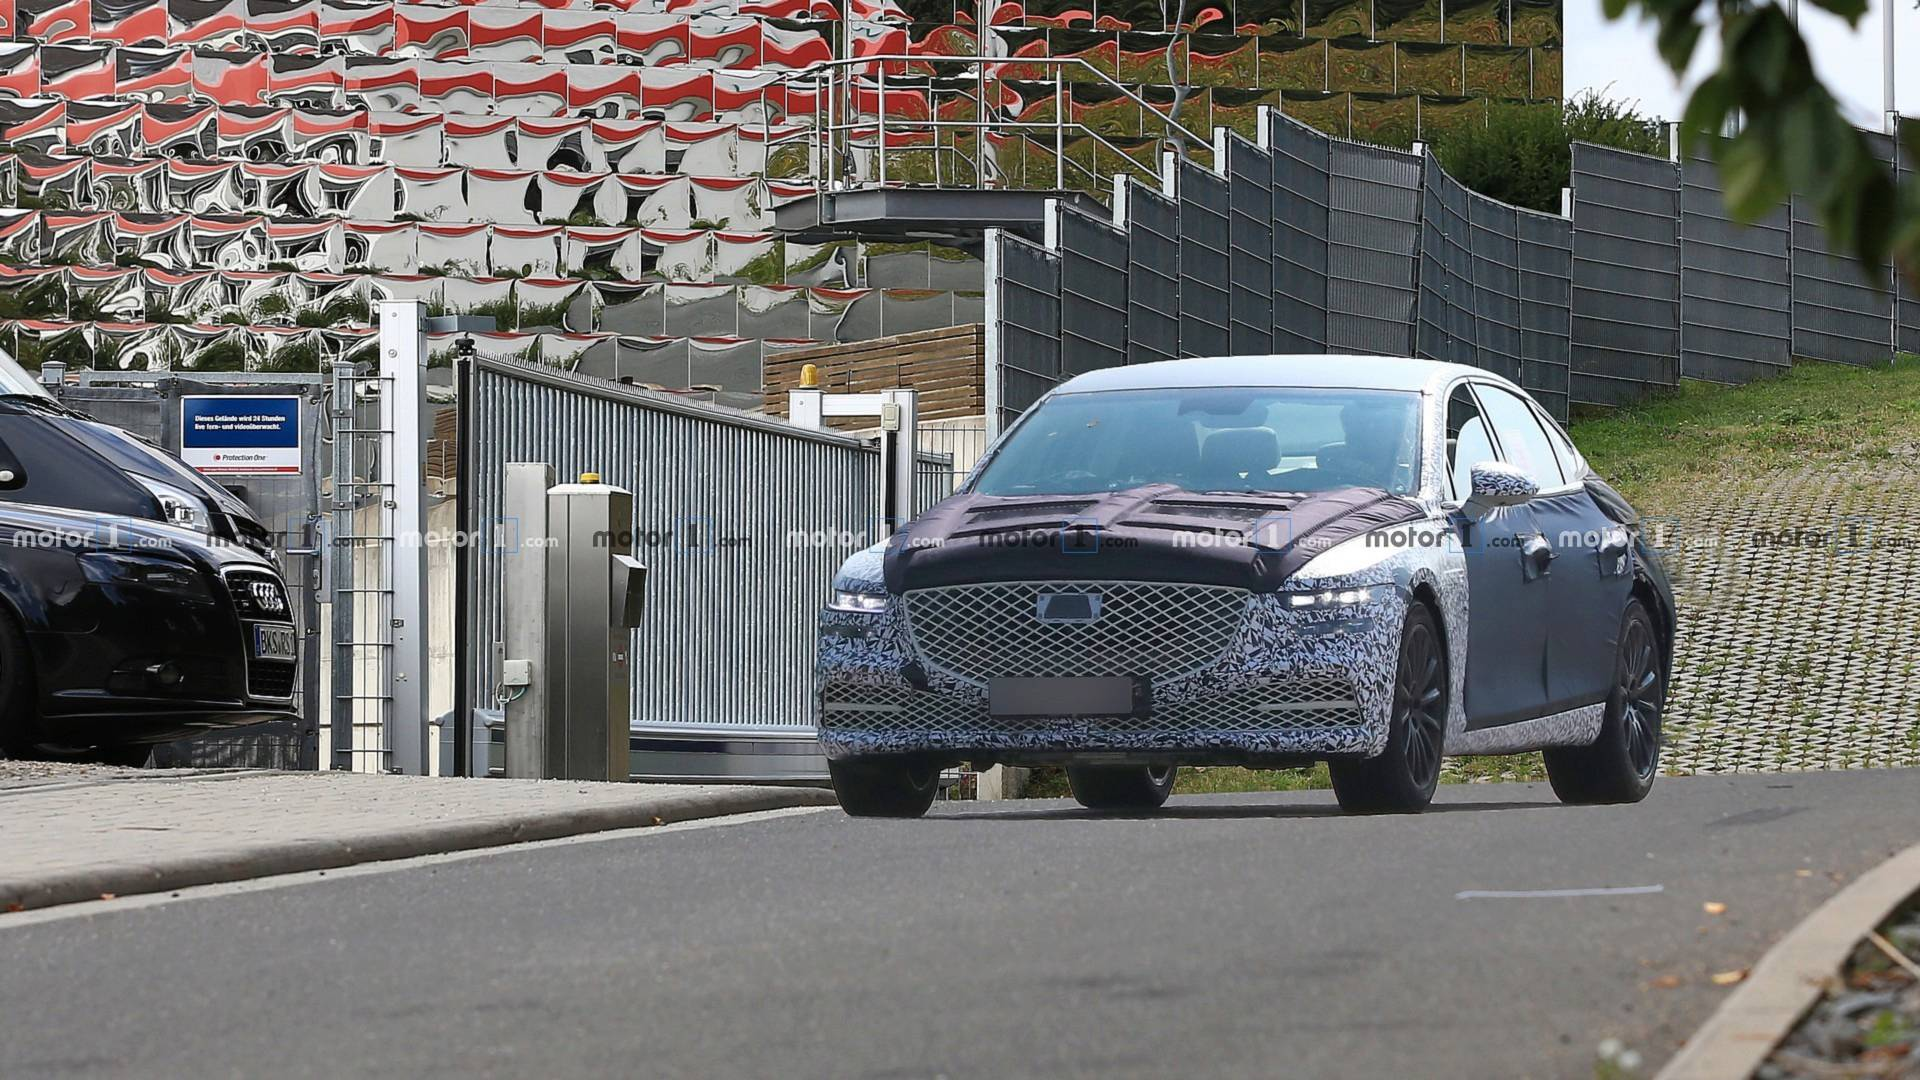 Another portion of spy photos depicting the new Genesis G80 sedan/saloon has emerged online. Allegedly, the photographer spotted the car running at full throttle at the Nürburgring Circuit in Germany.